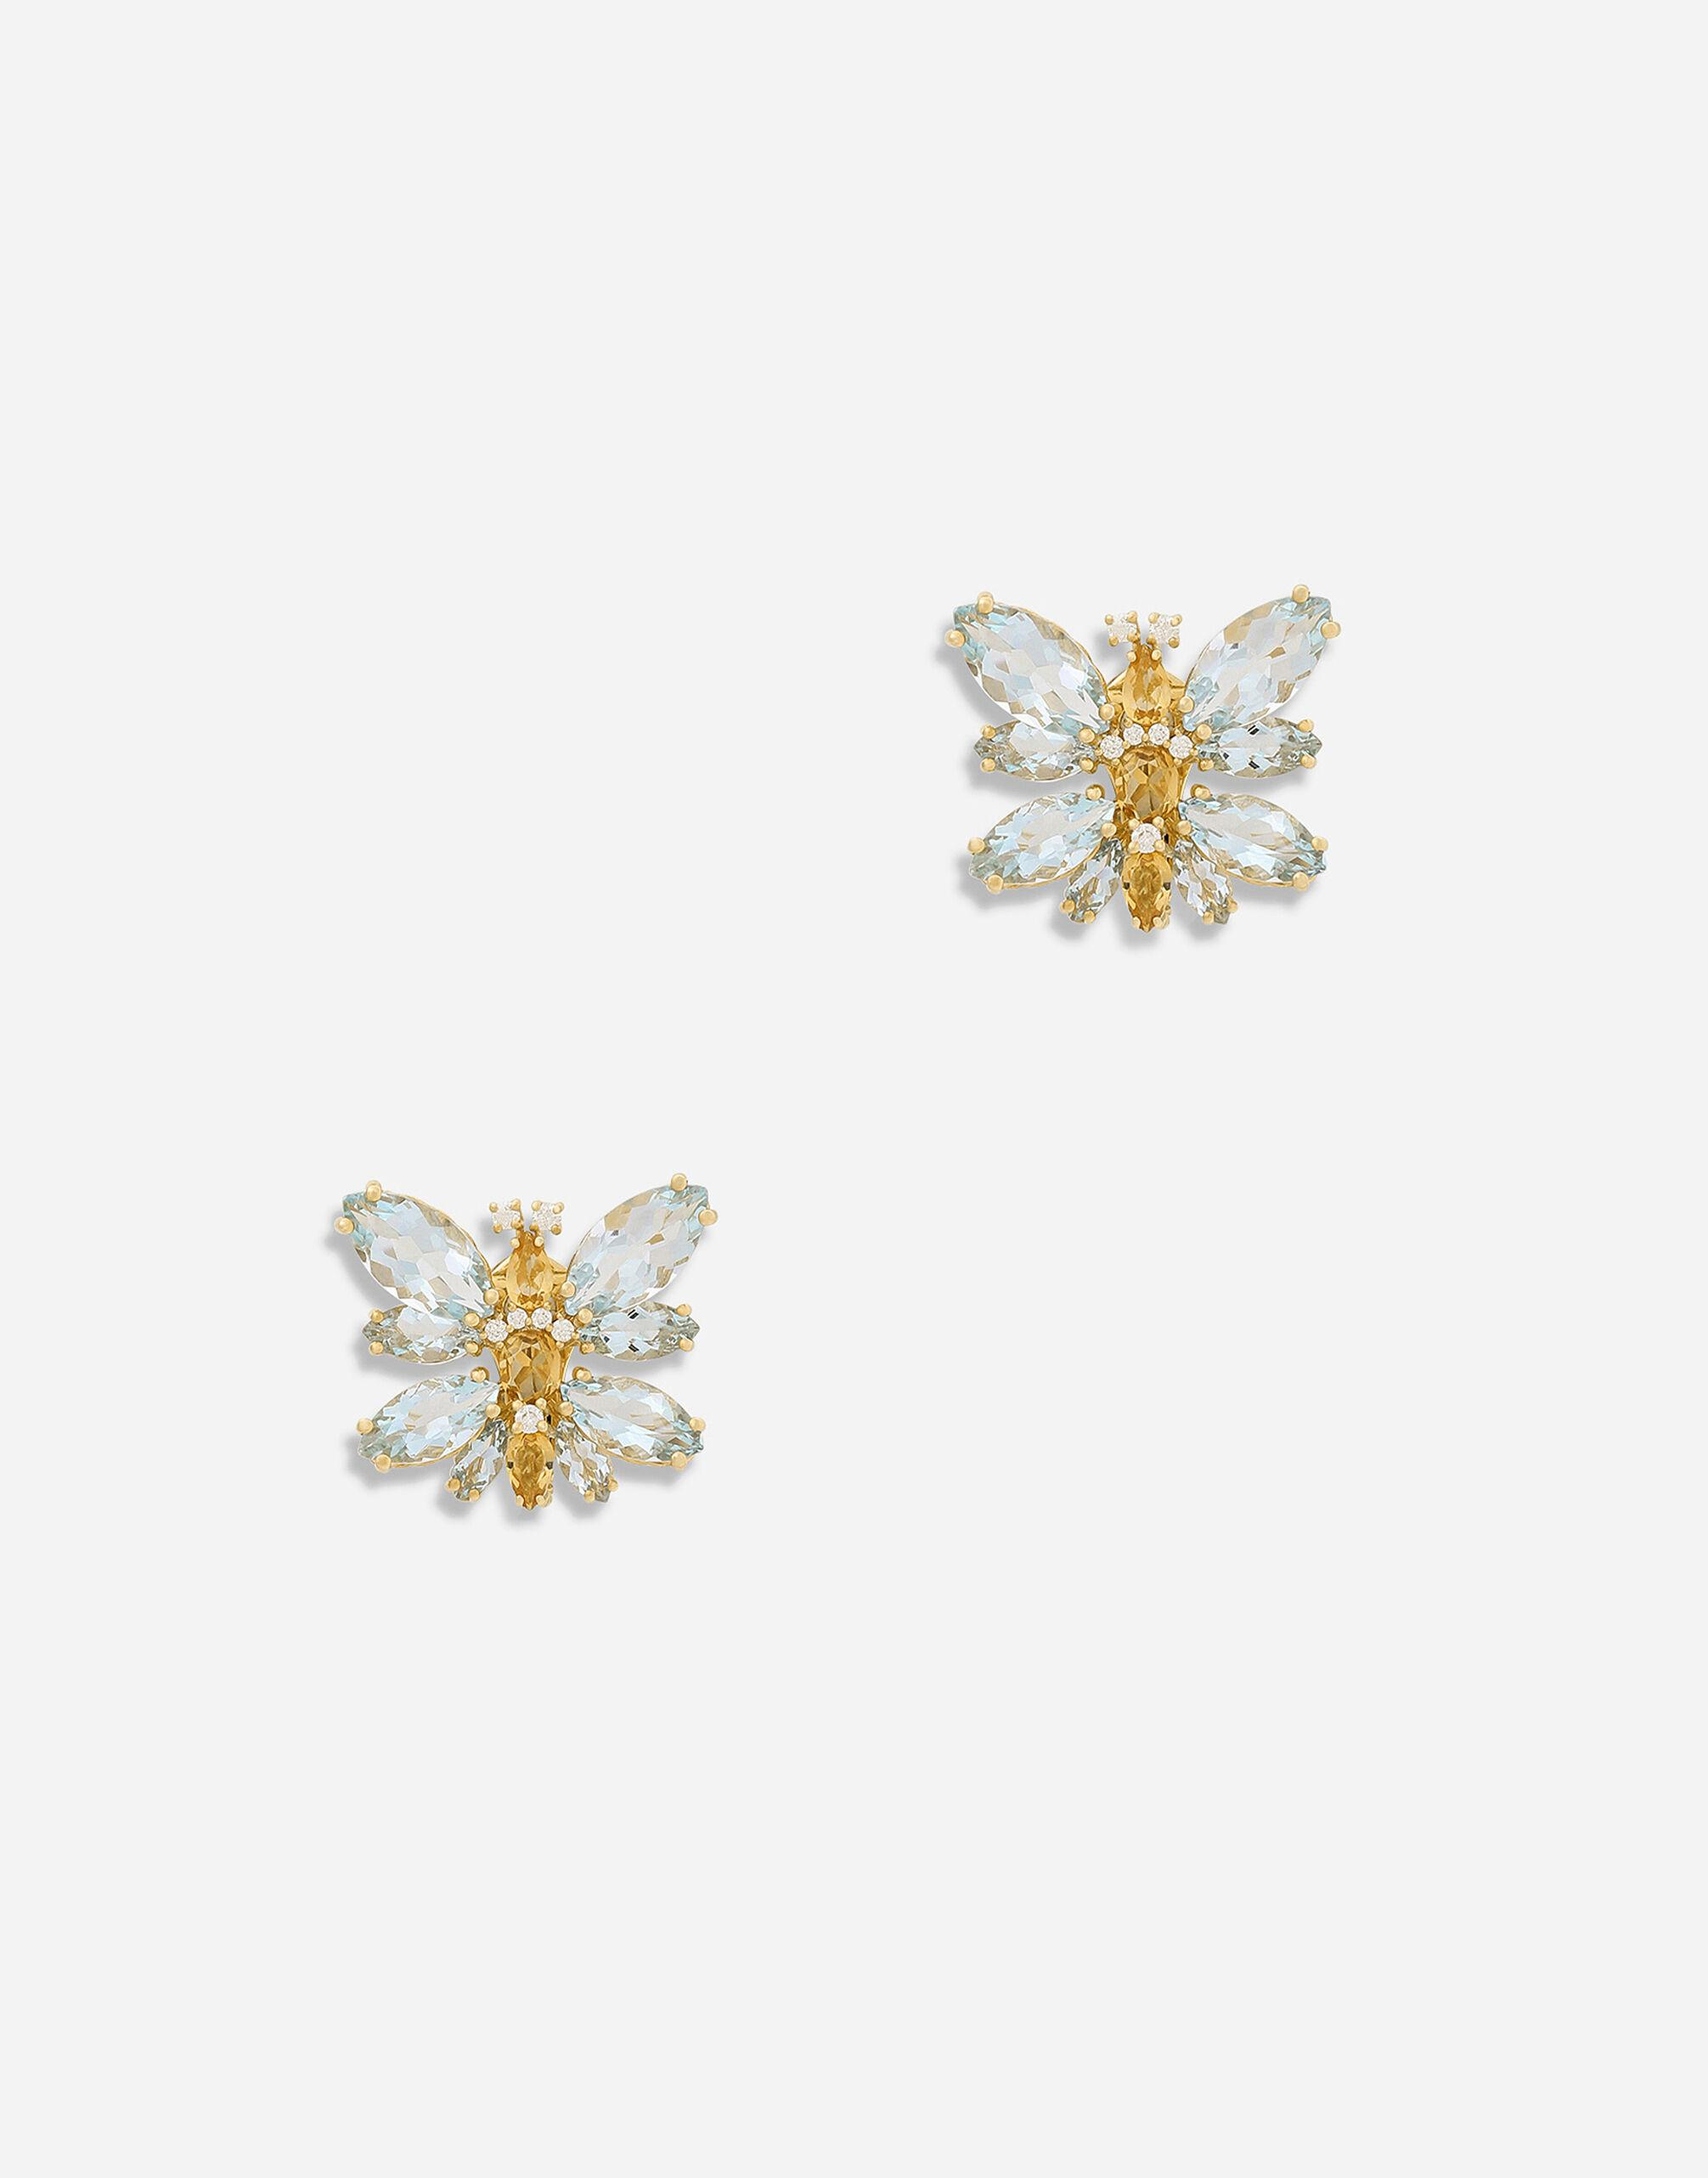 Spring earrings in yellow 18kt gold with aquamarine butterfly